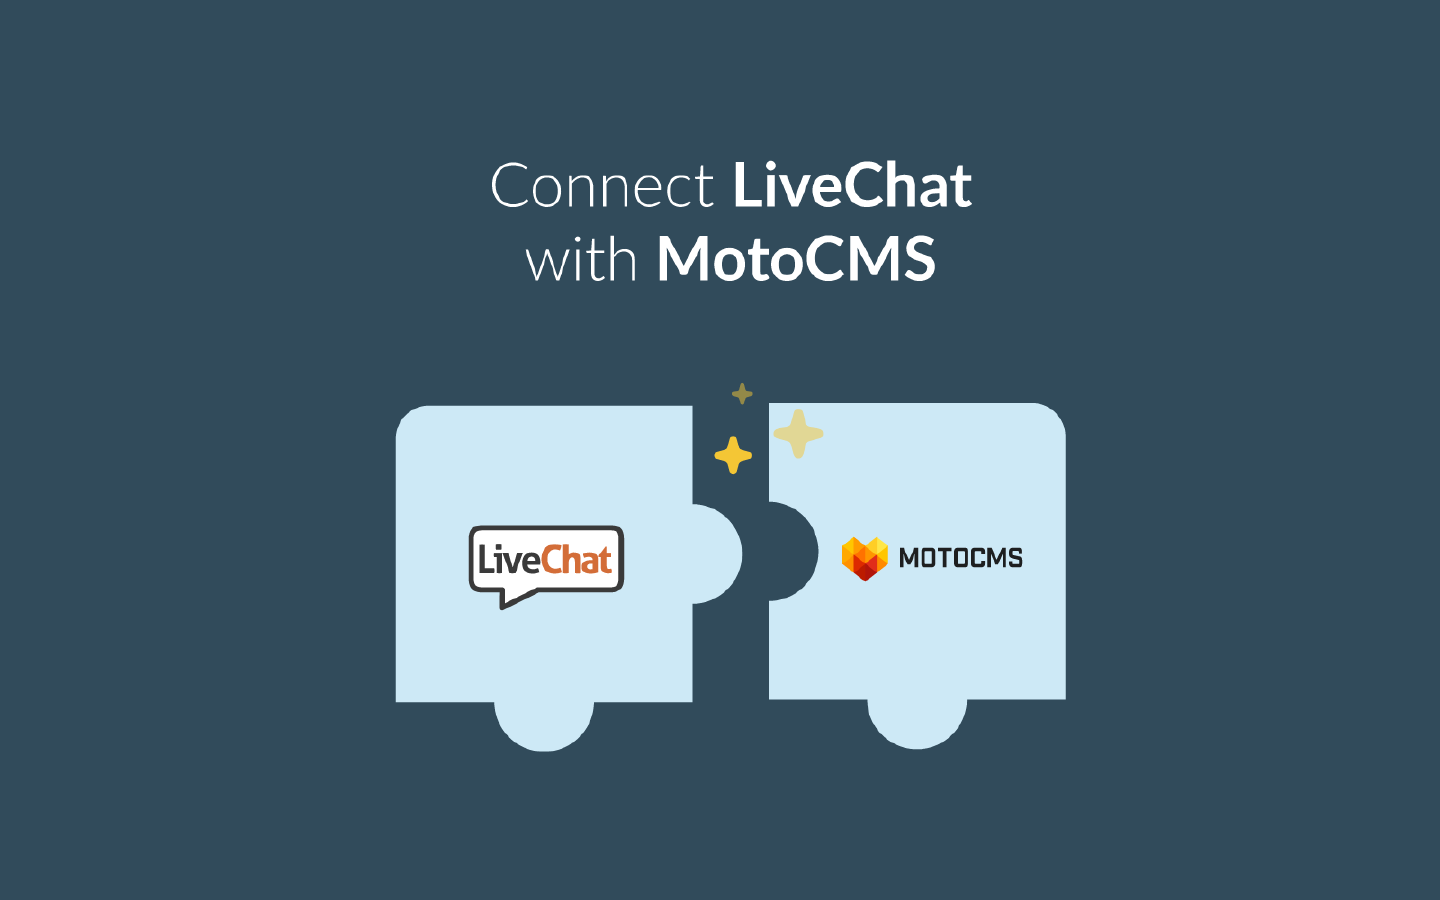 Connect LiveChat with MotoCMS